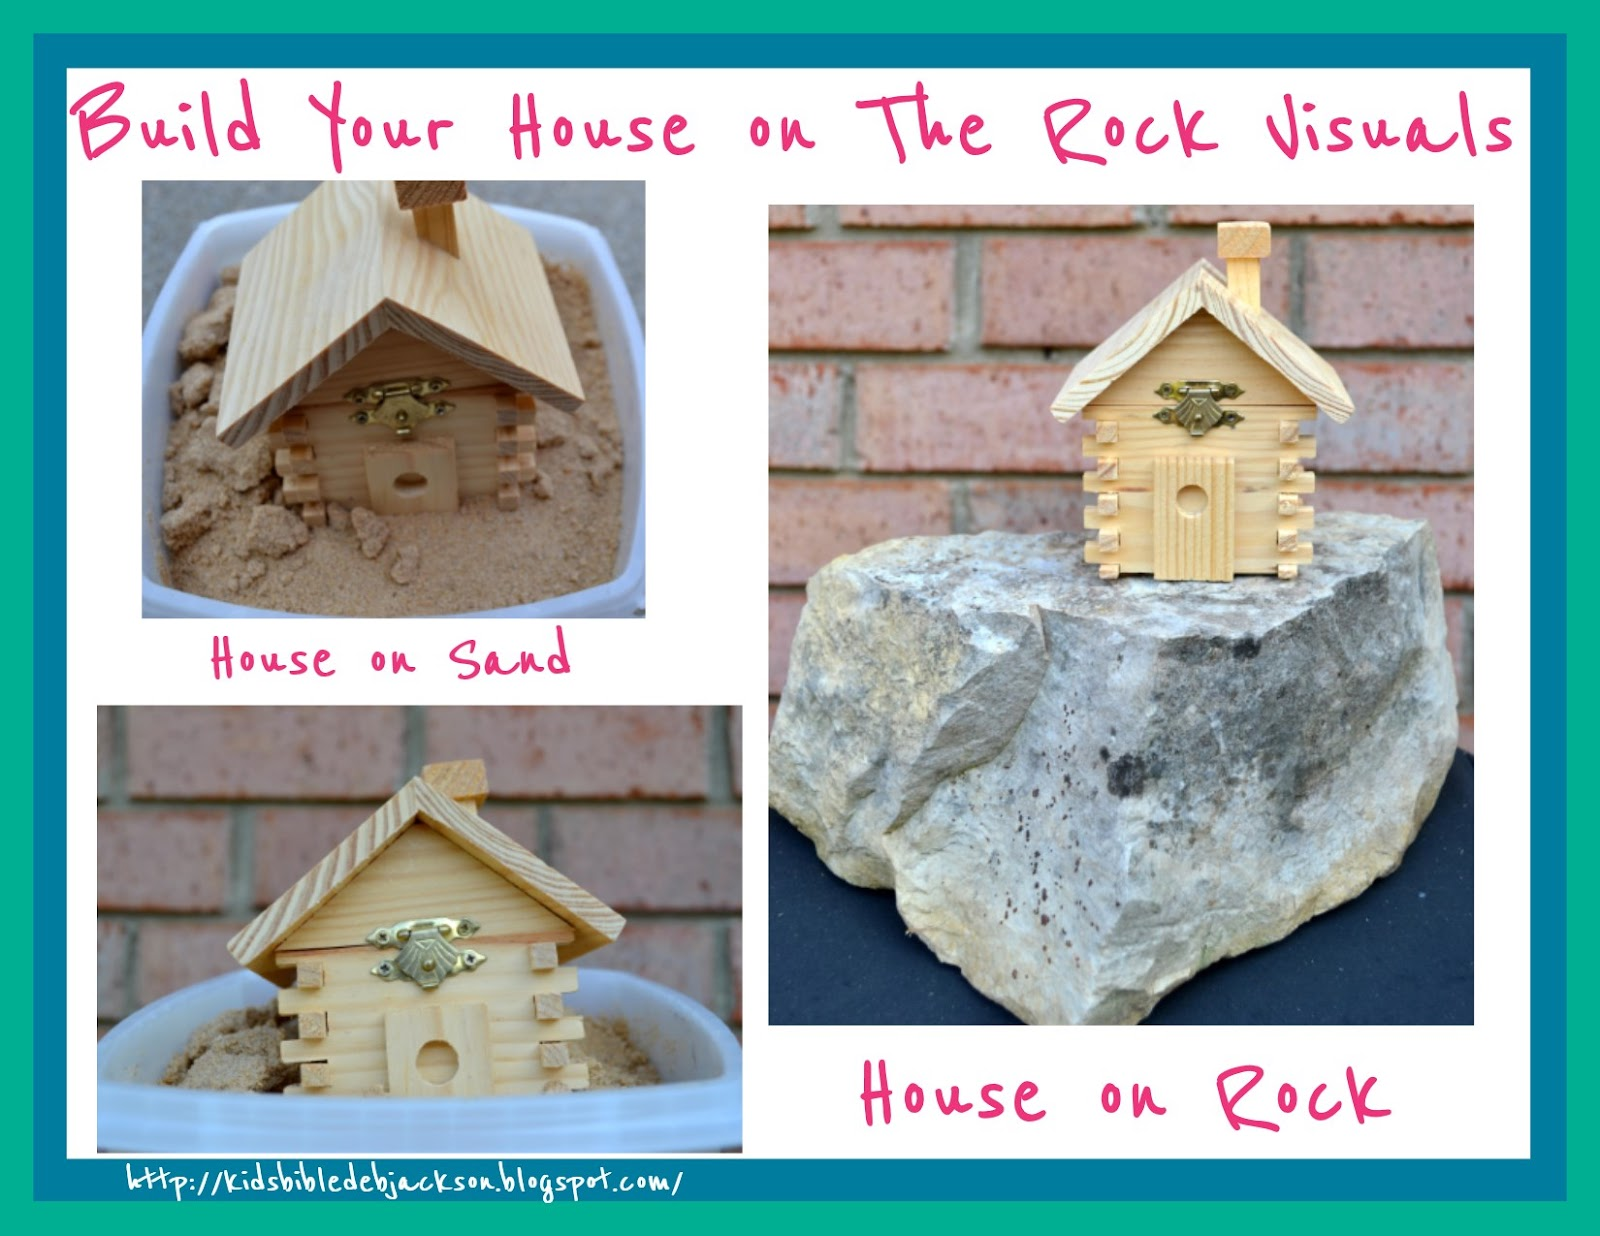 http://kidsbibledebjackson.blogspot.com/2014/09/parable-of-build-your-house-on-rock-be.html